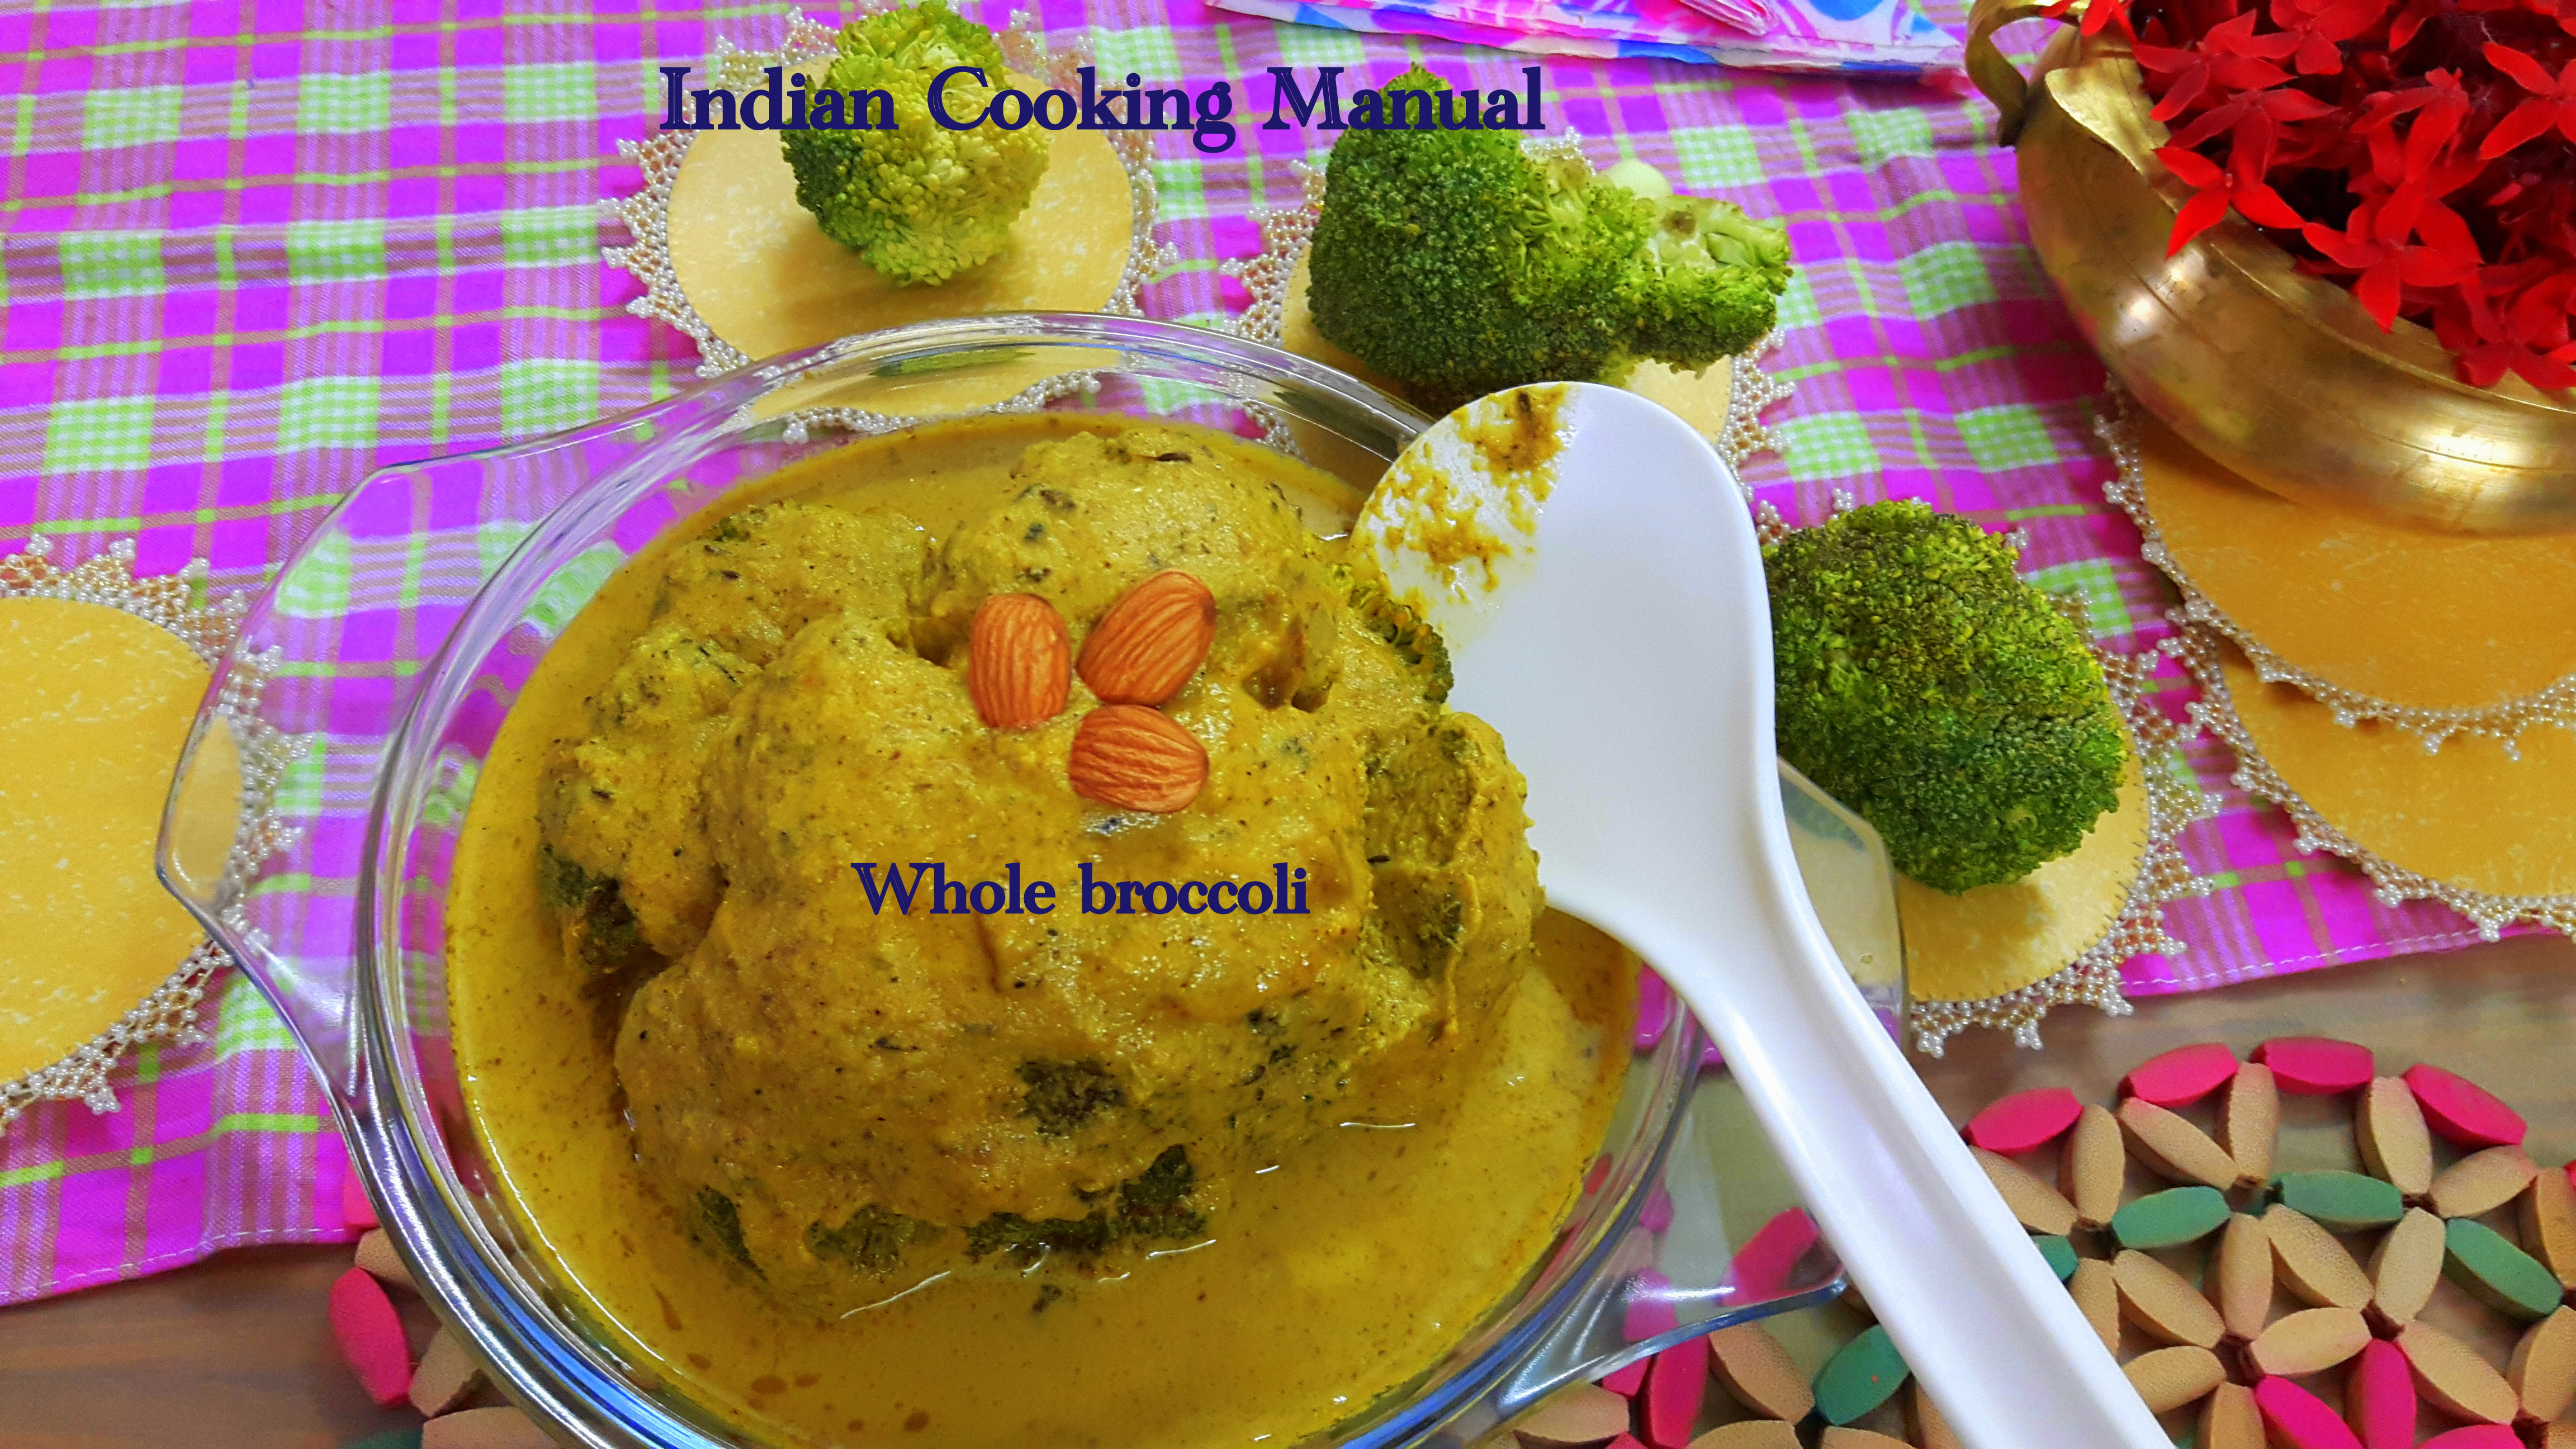 Whole broccoli (musallam)/masala